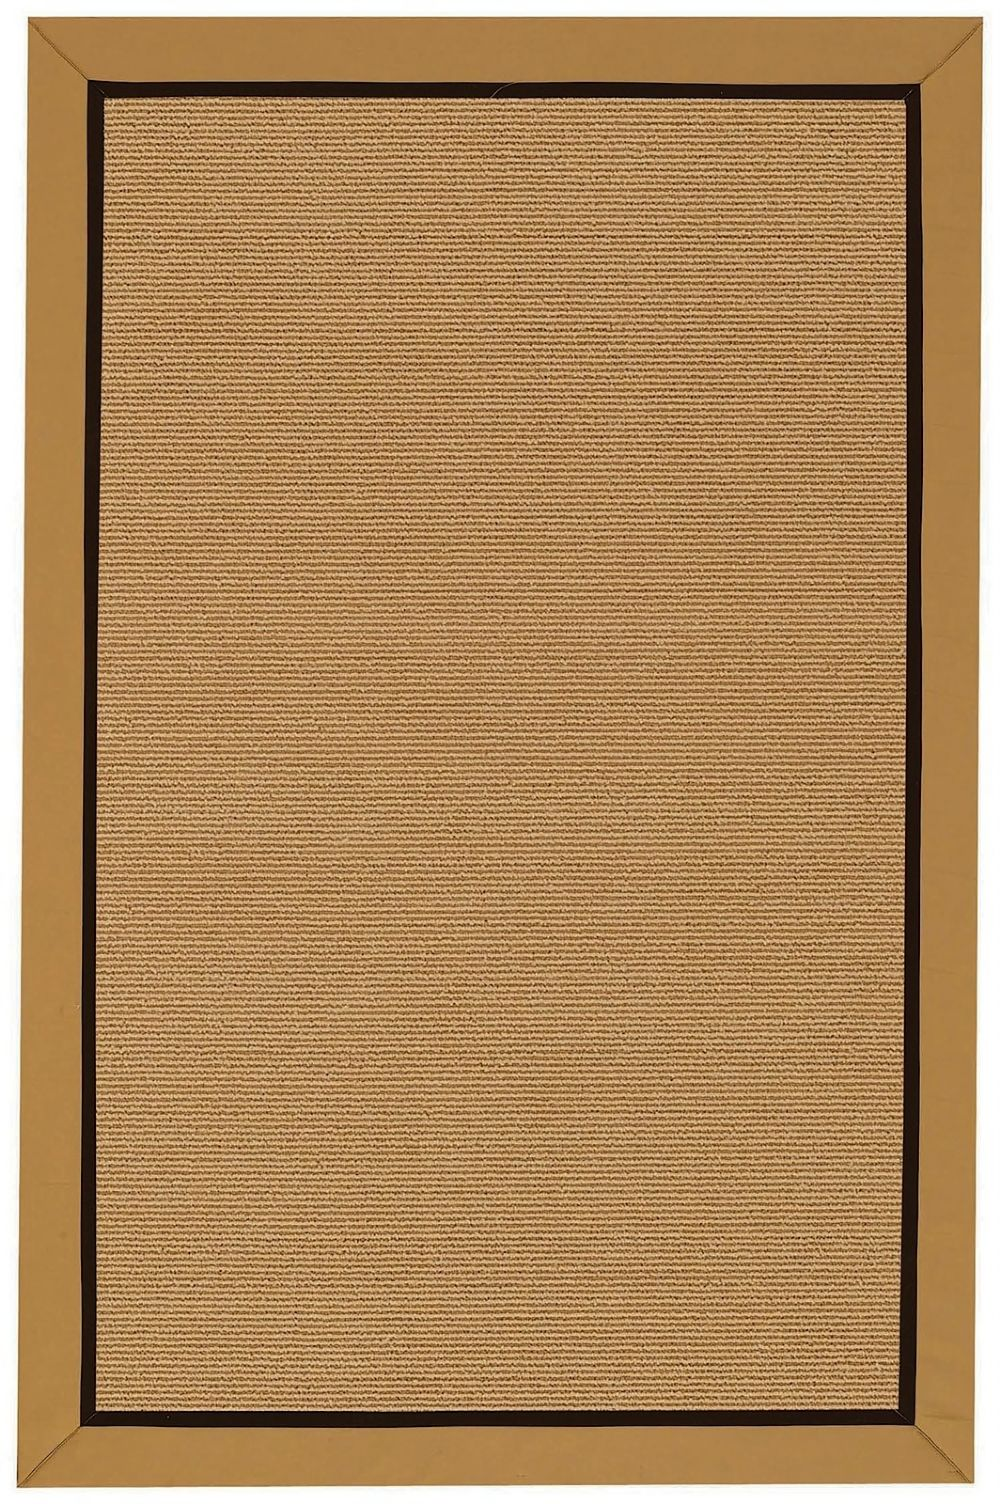 capel fern ridge contemporary area rug collection